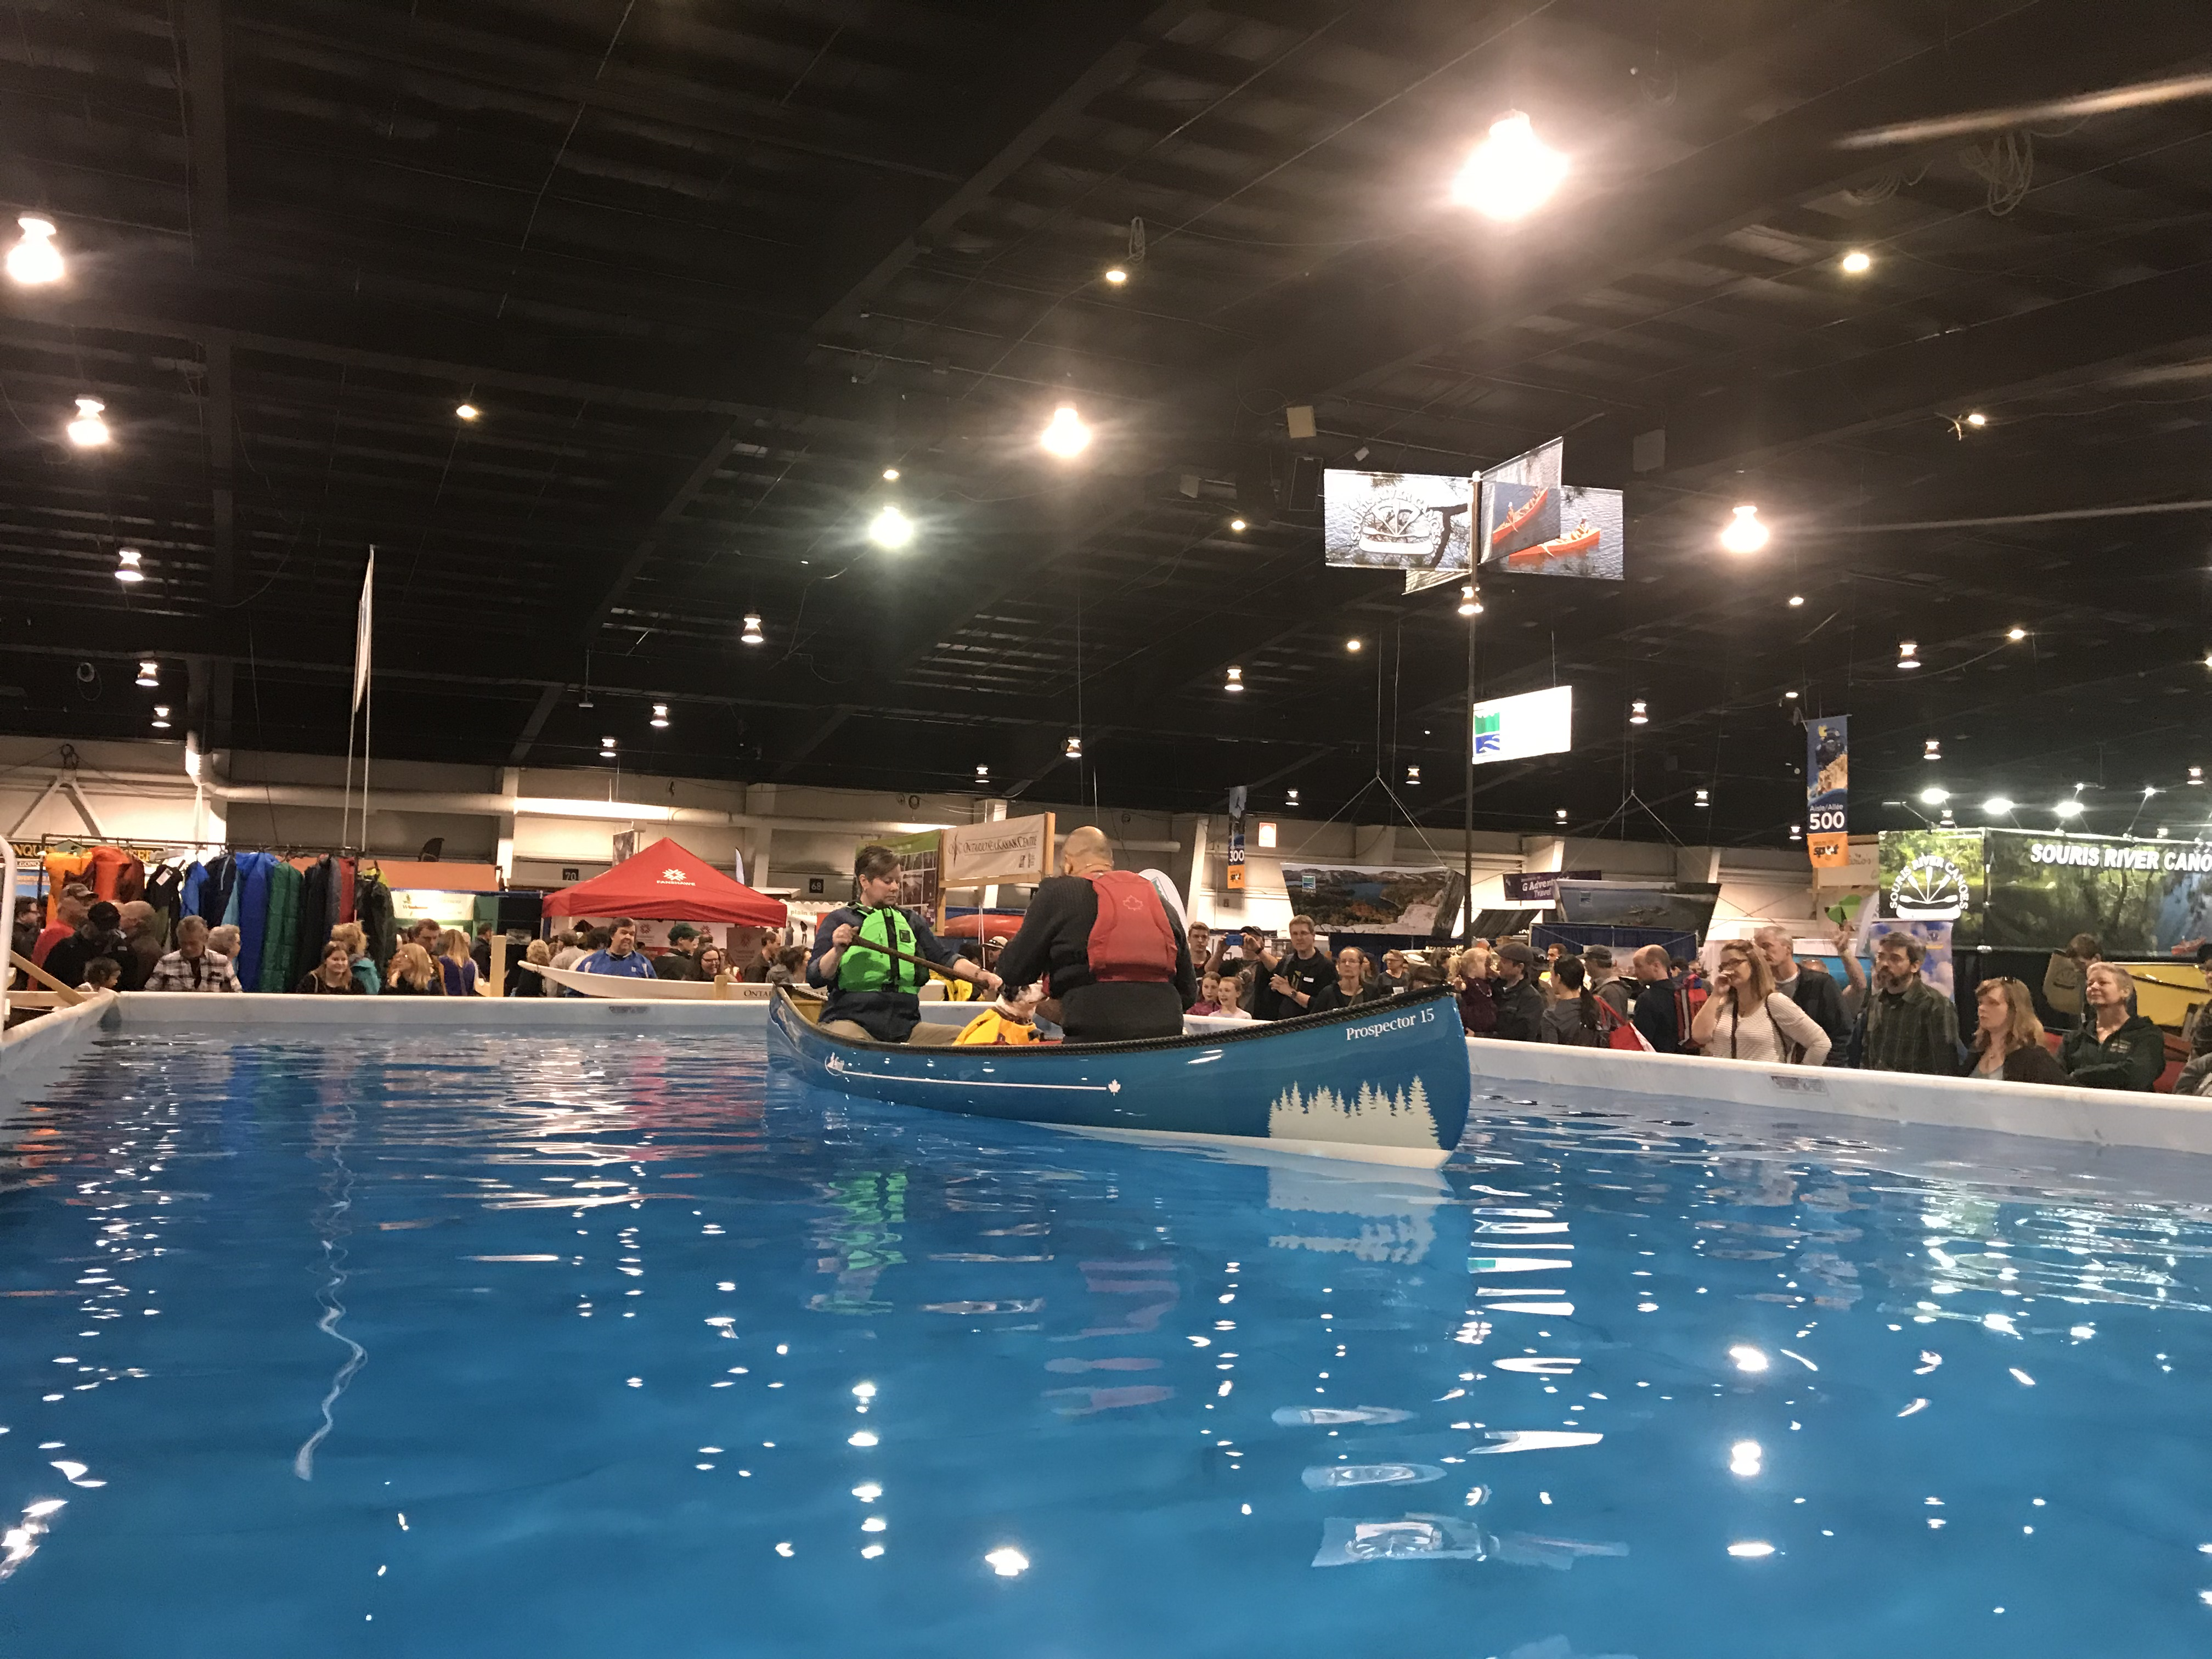 The outdoor adventure show 2018 toronto day 2 of 2 for Pool show toronto 2018